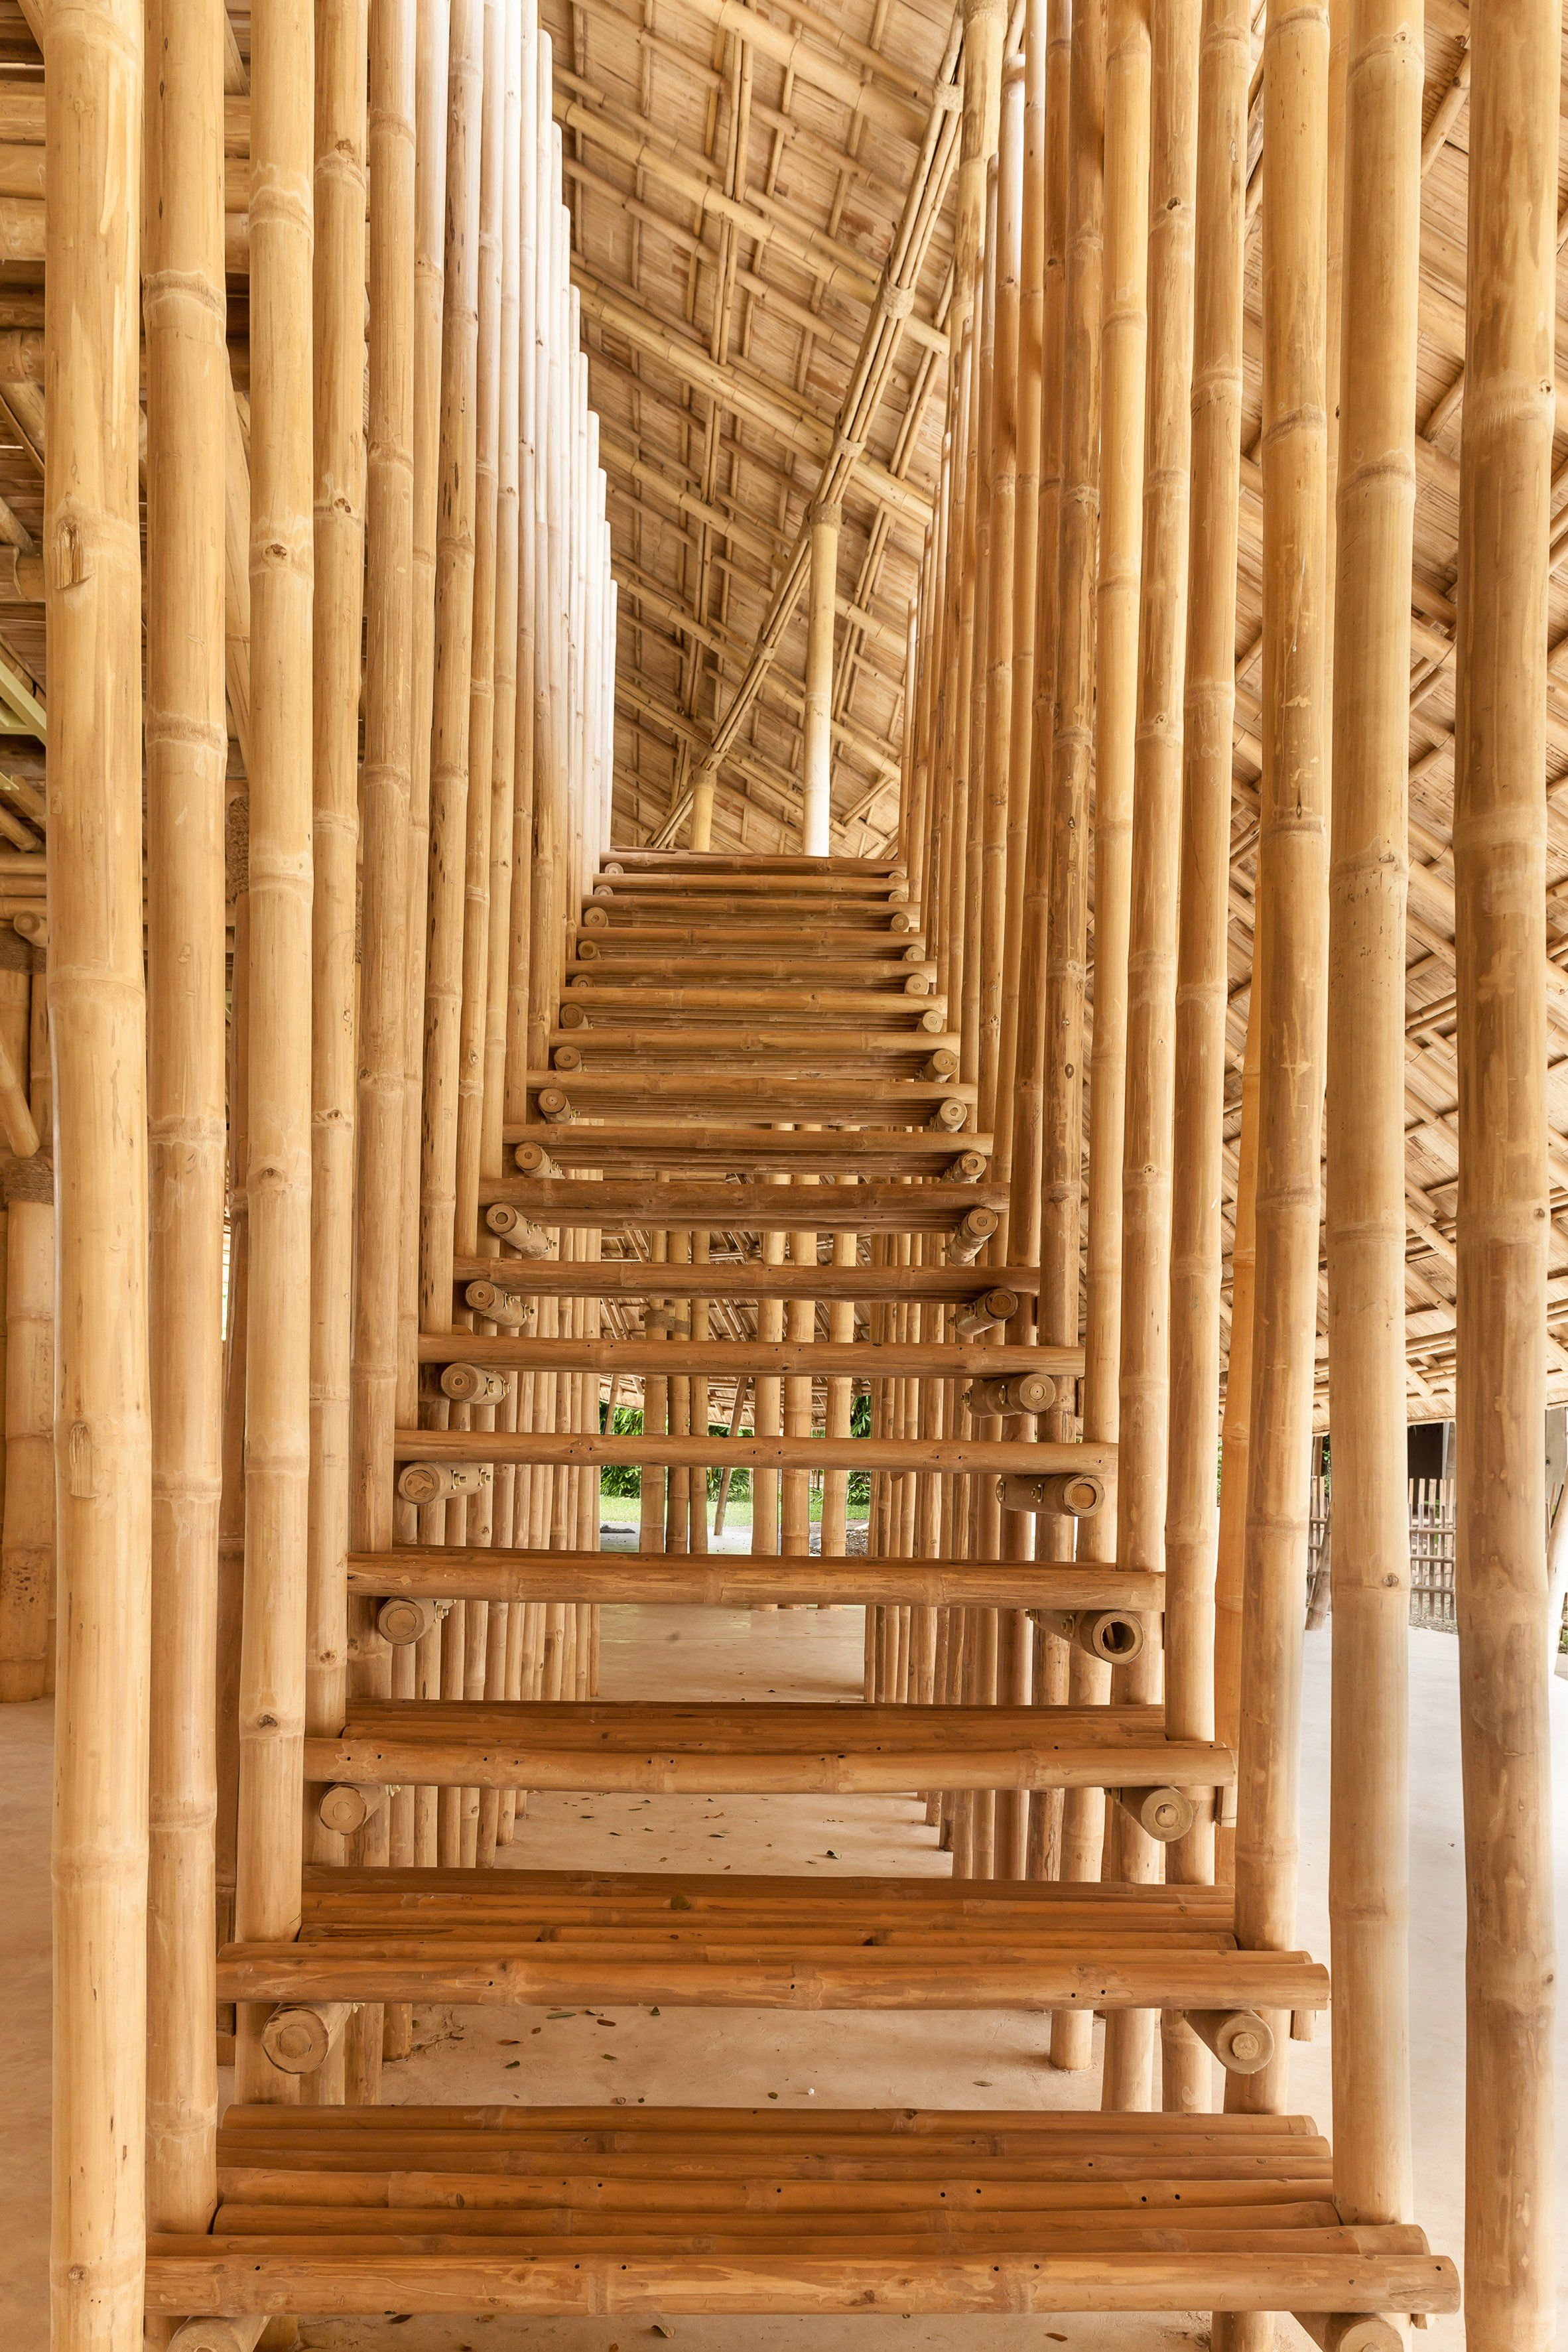 Chiangmai Life Architects and Construction modelled the segmented